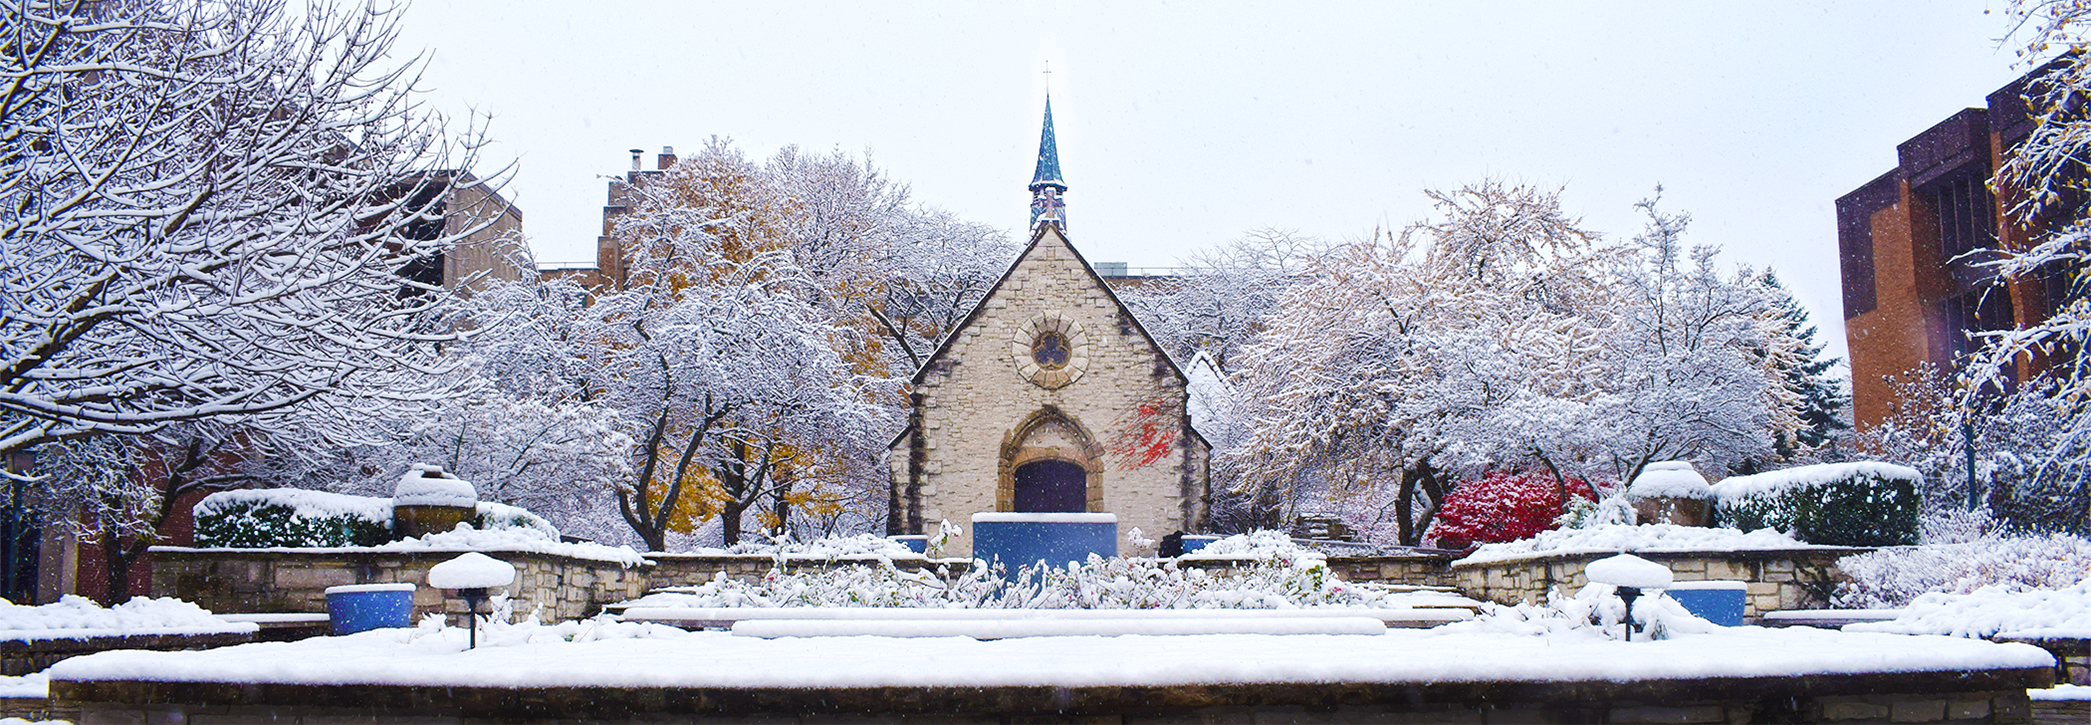 St. Joan of Arc Chapel in the winter.